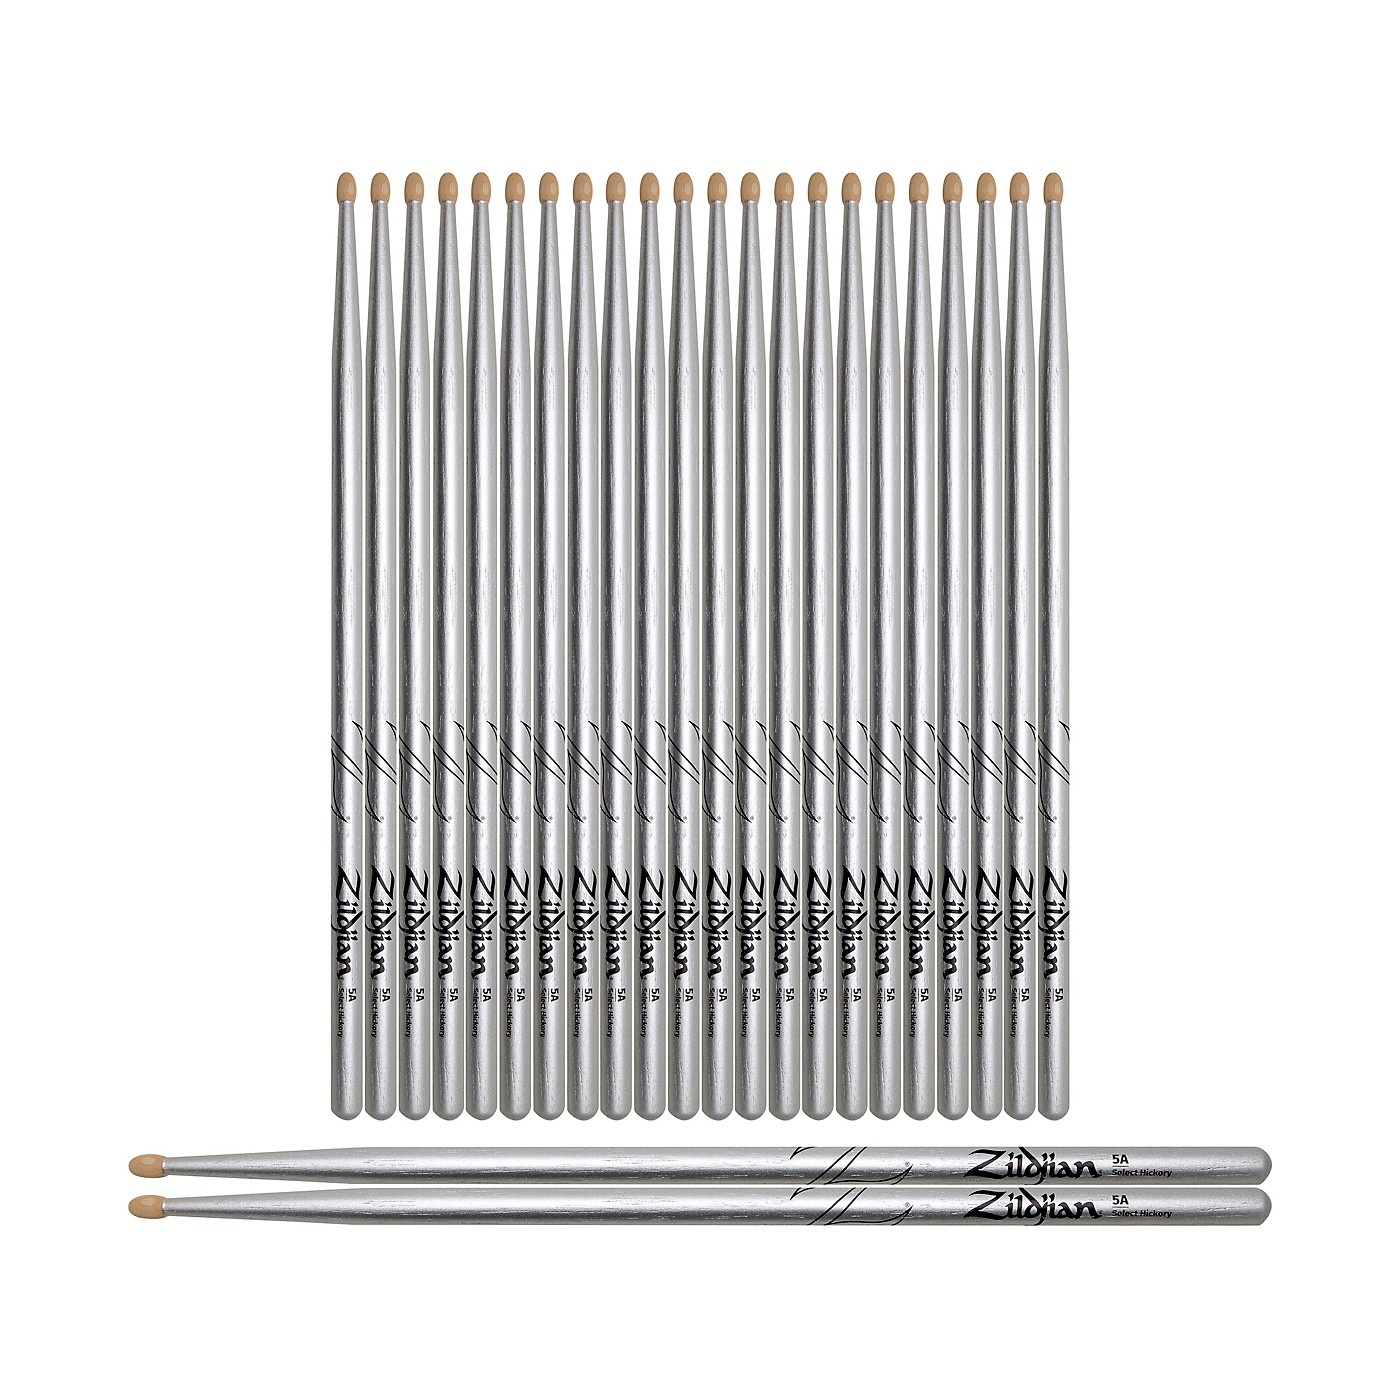 Zildjian Chroma Silver Drum Sticks 12-Pack thumbnail